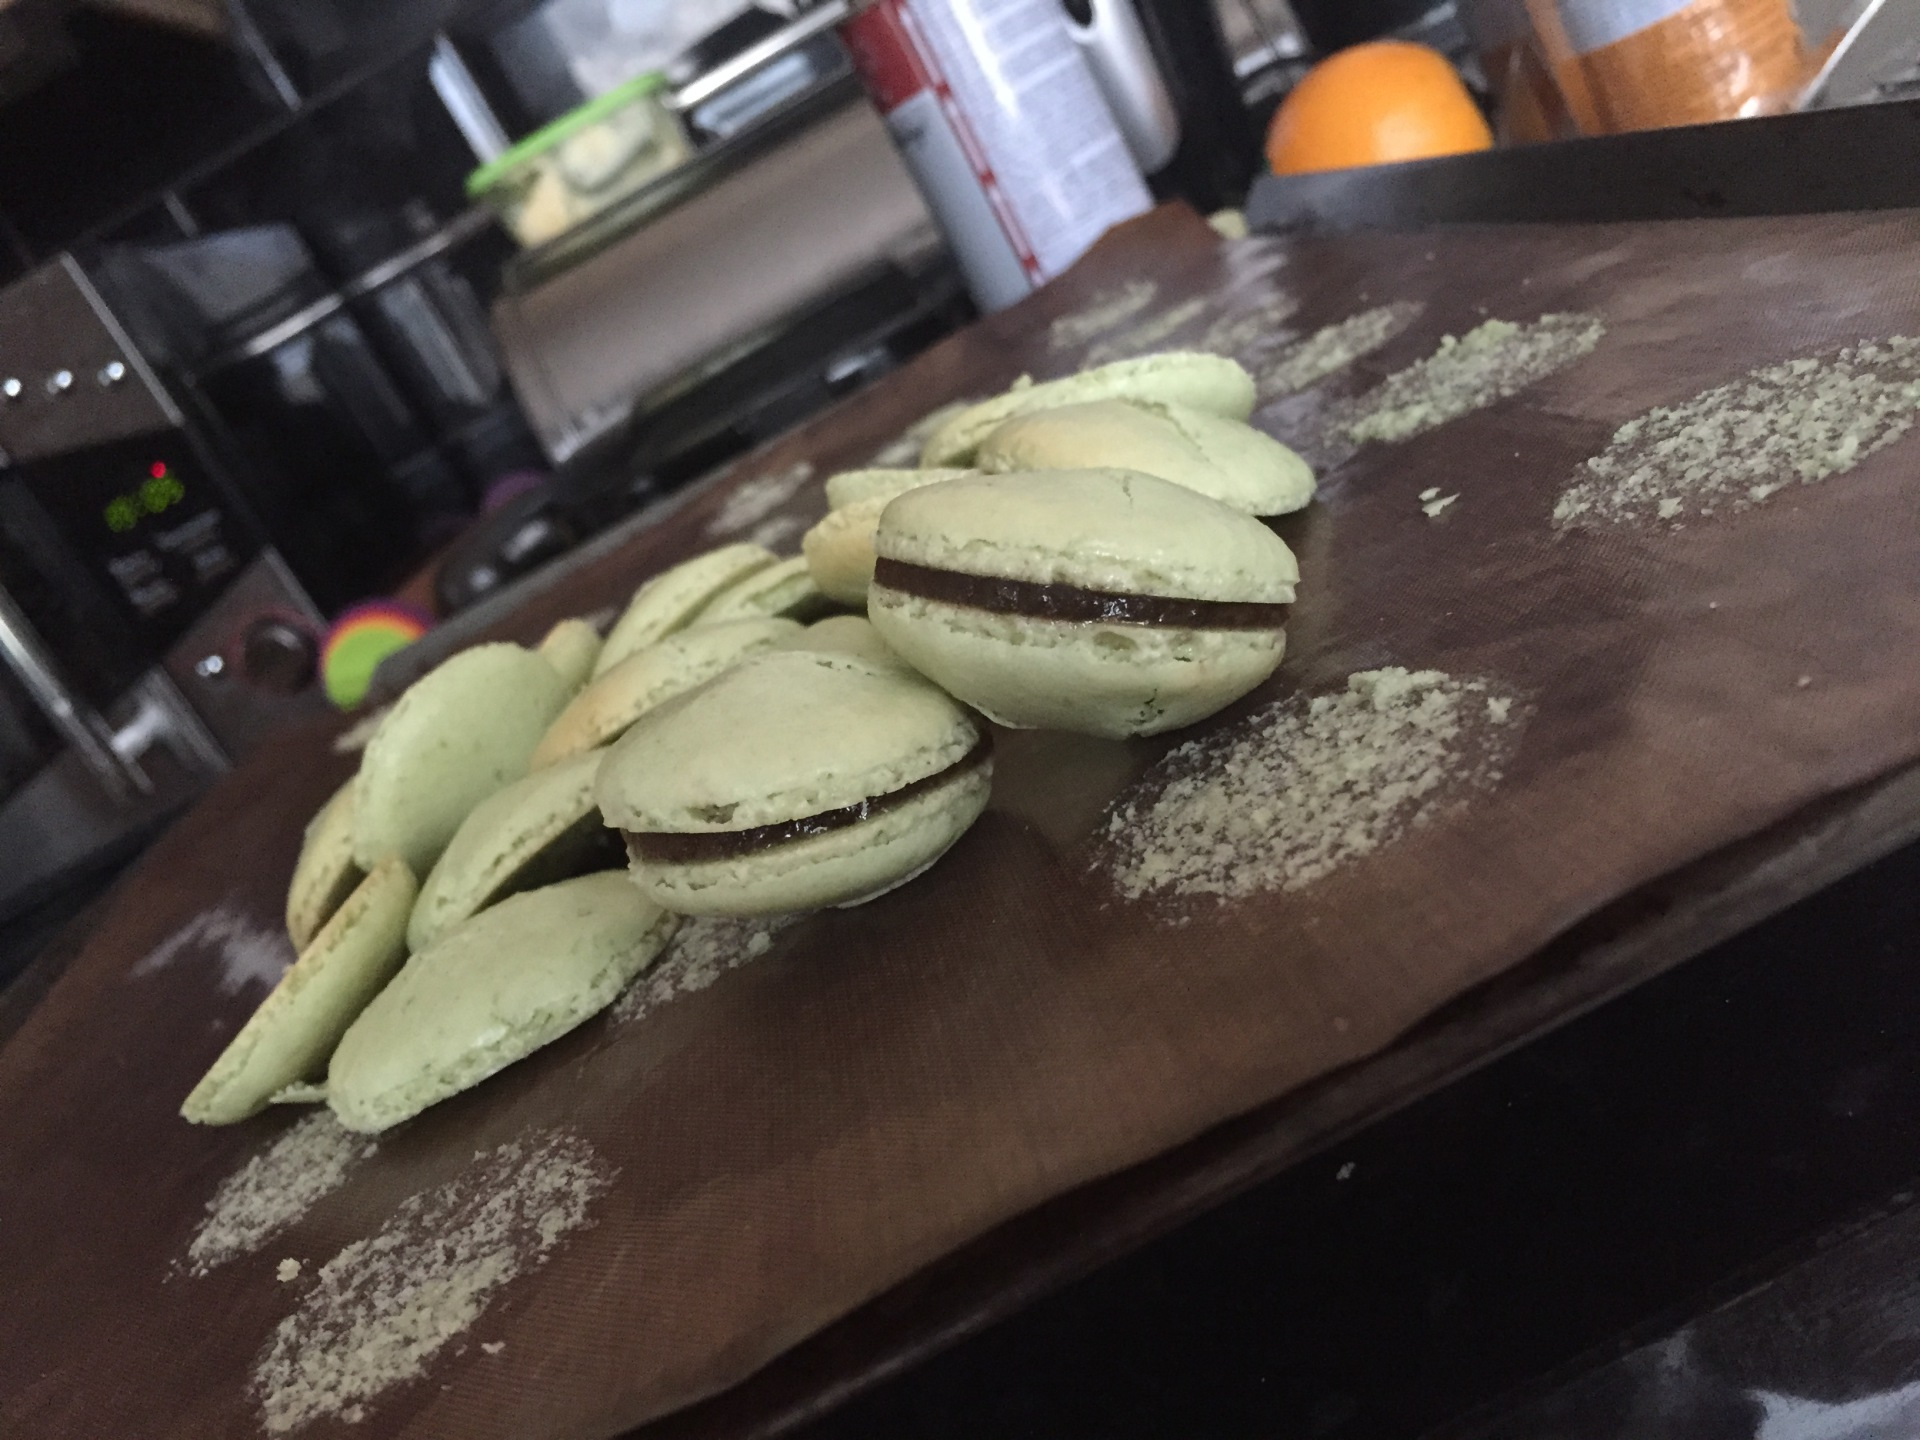 Mint macarons, rum and coke gel